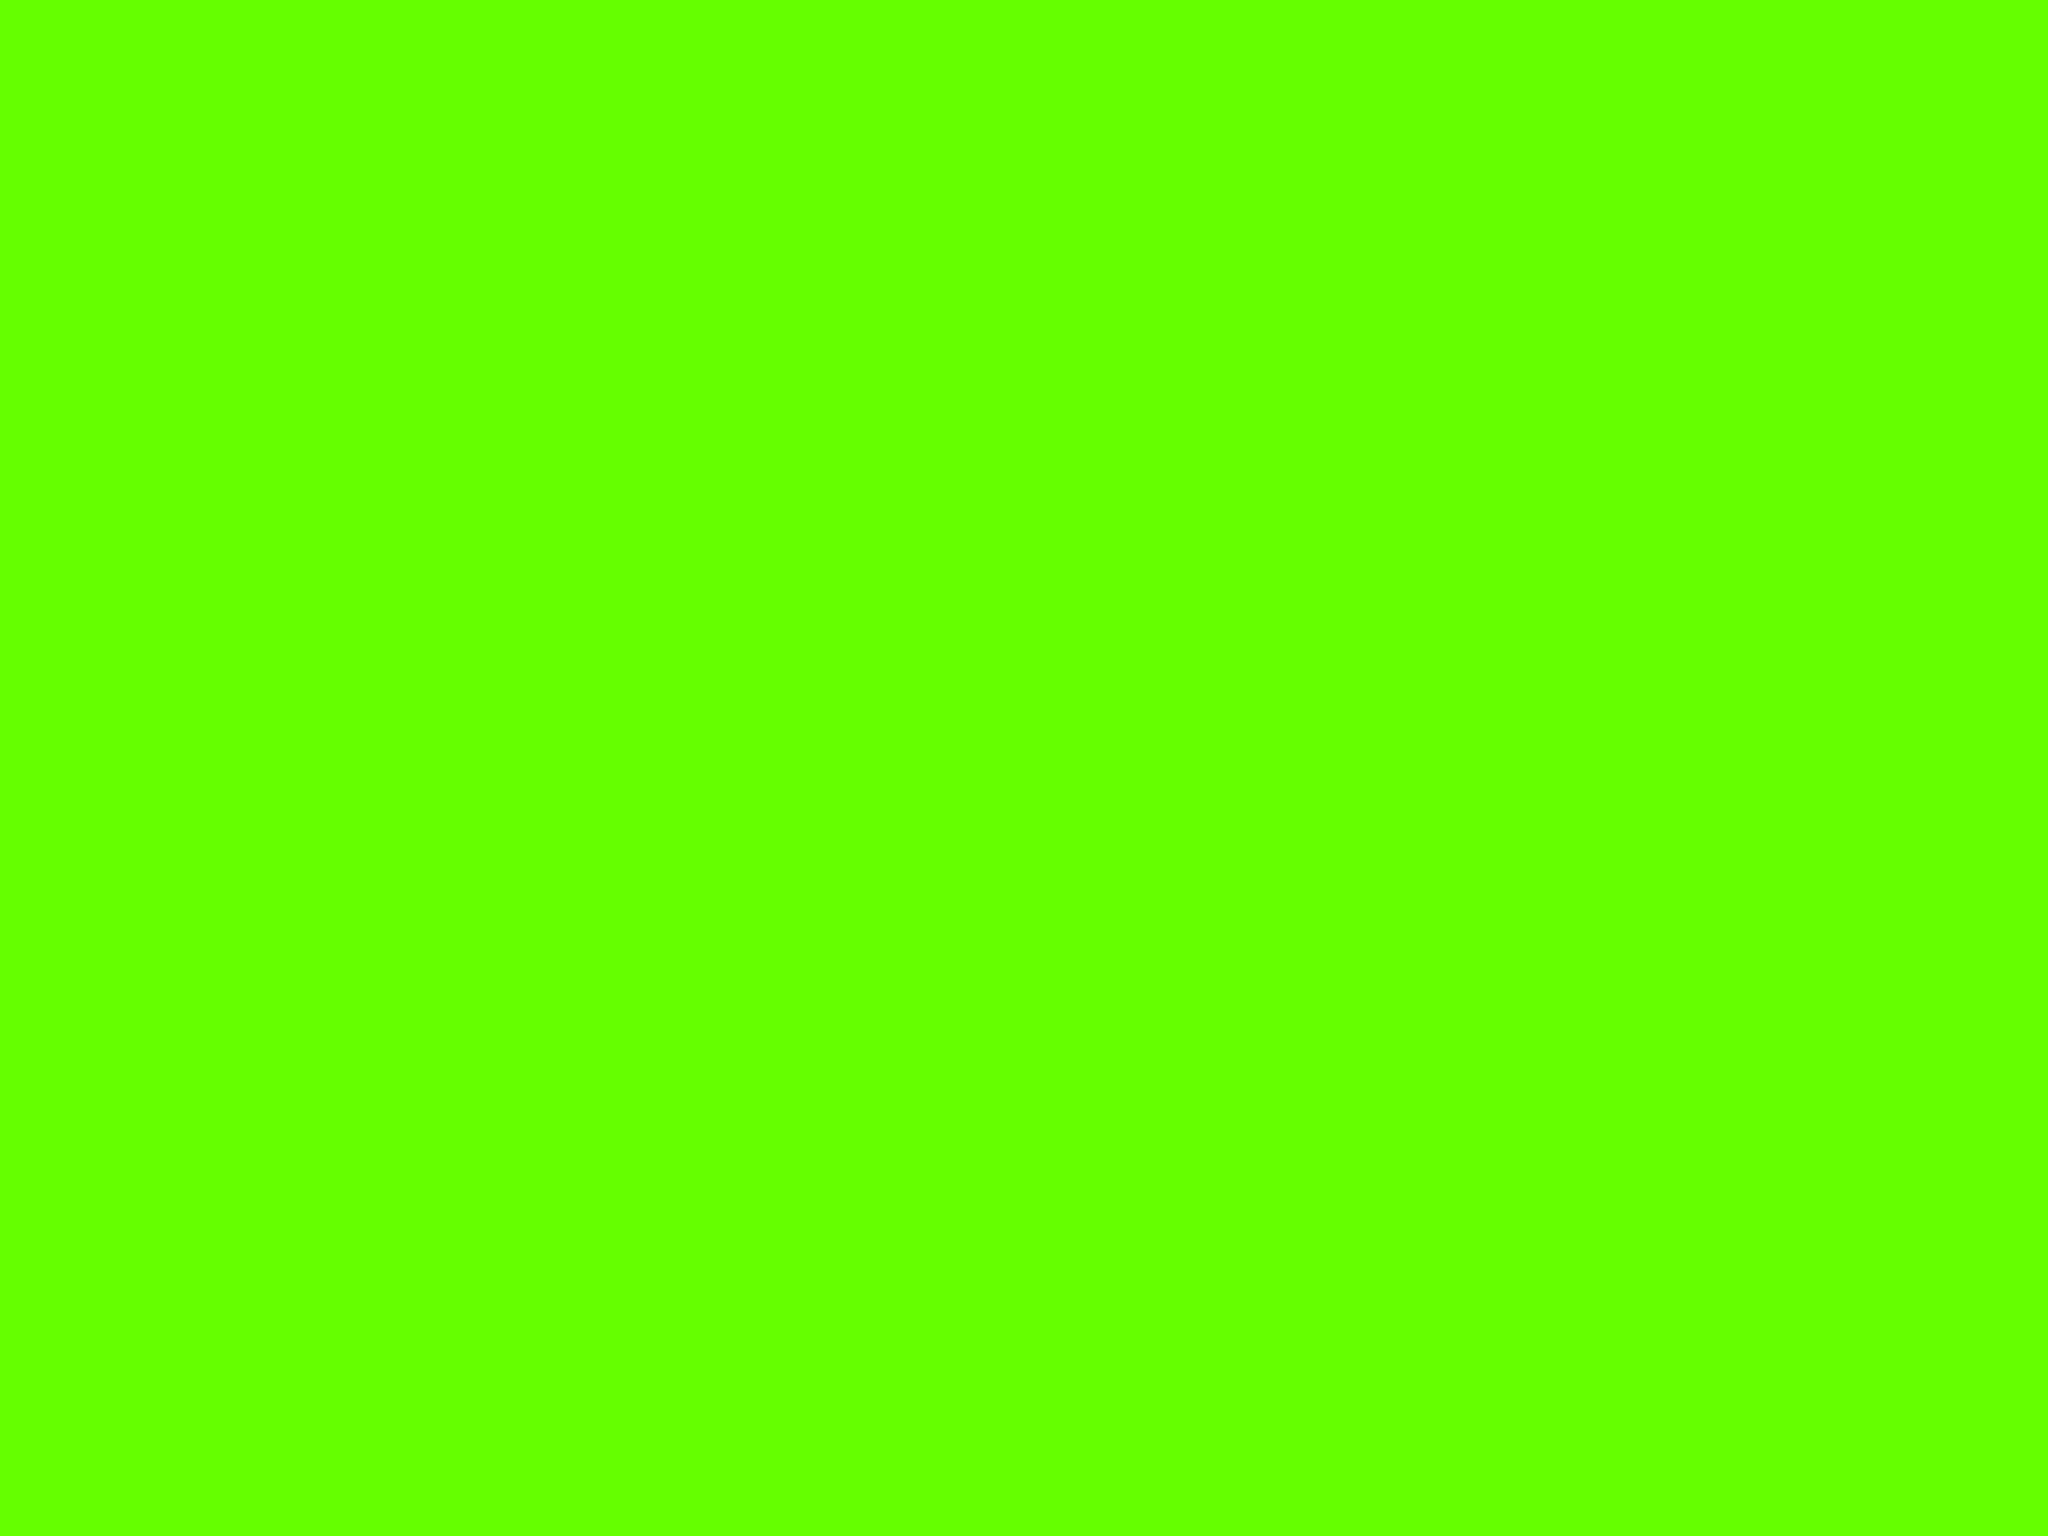 1600x900 Neon Green Solid Color Background |Bright Green Color Background